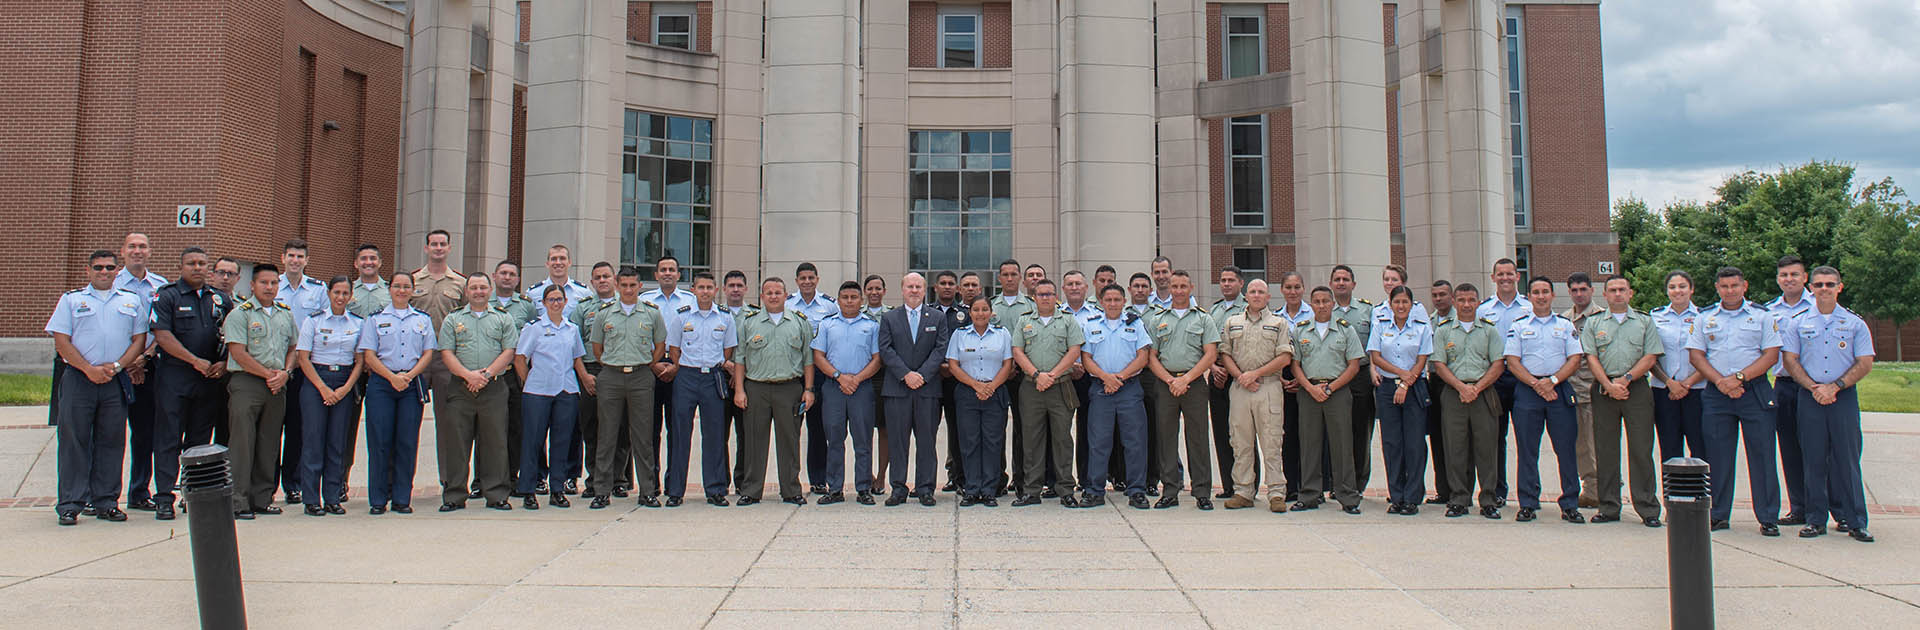 IAAFA Visit - Group Photo